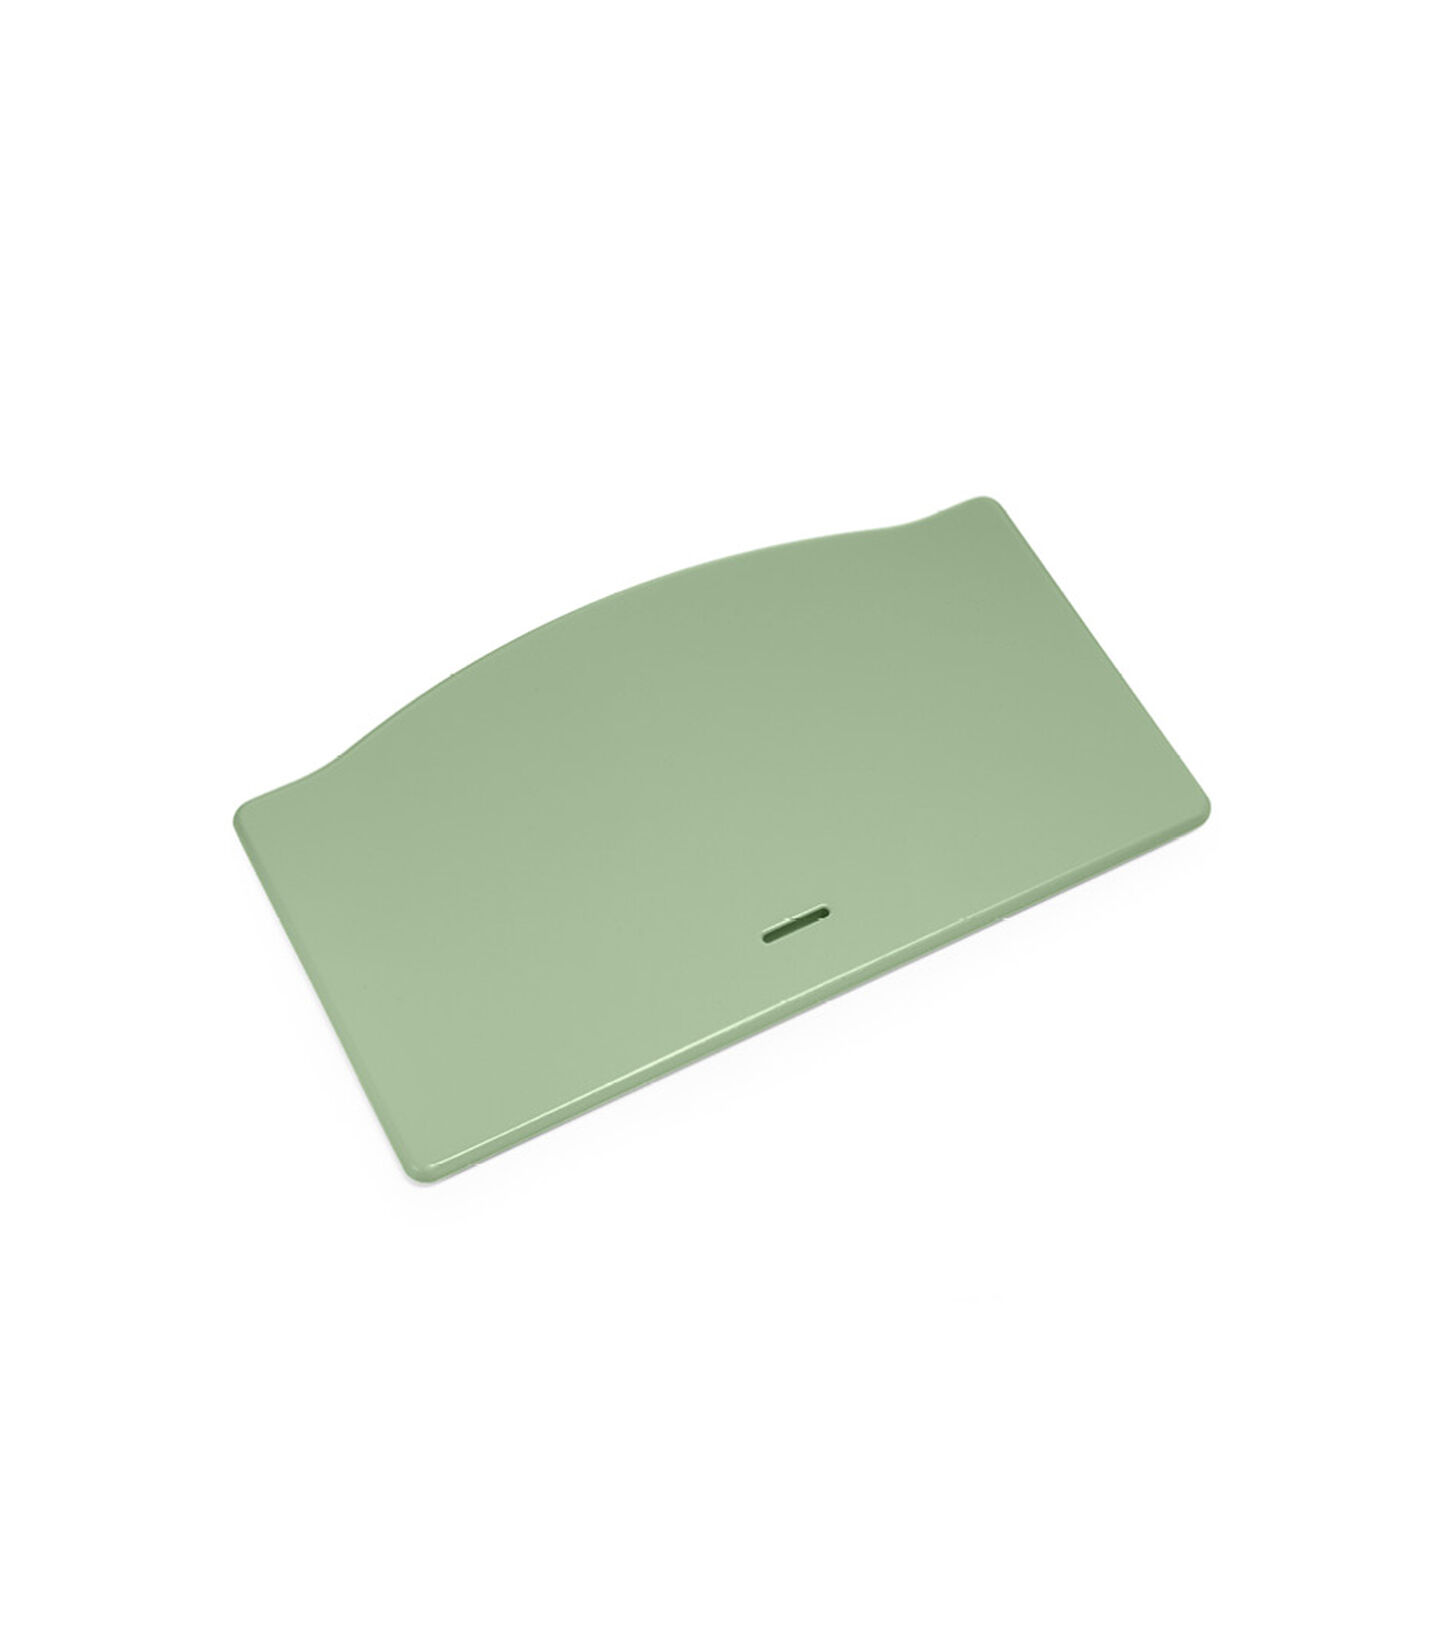 Tripp Trapp® Seatplate Moss Green, Verde Musgo, mainview view 2